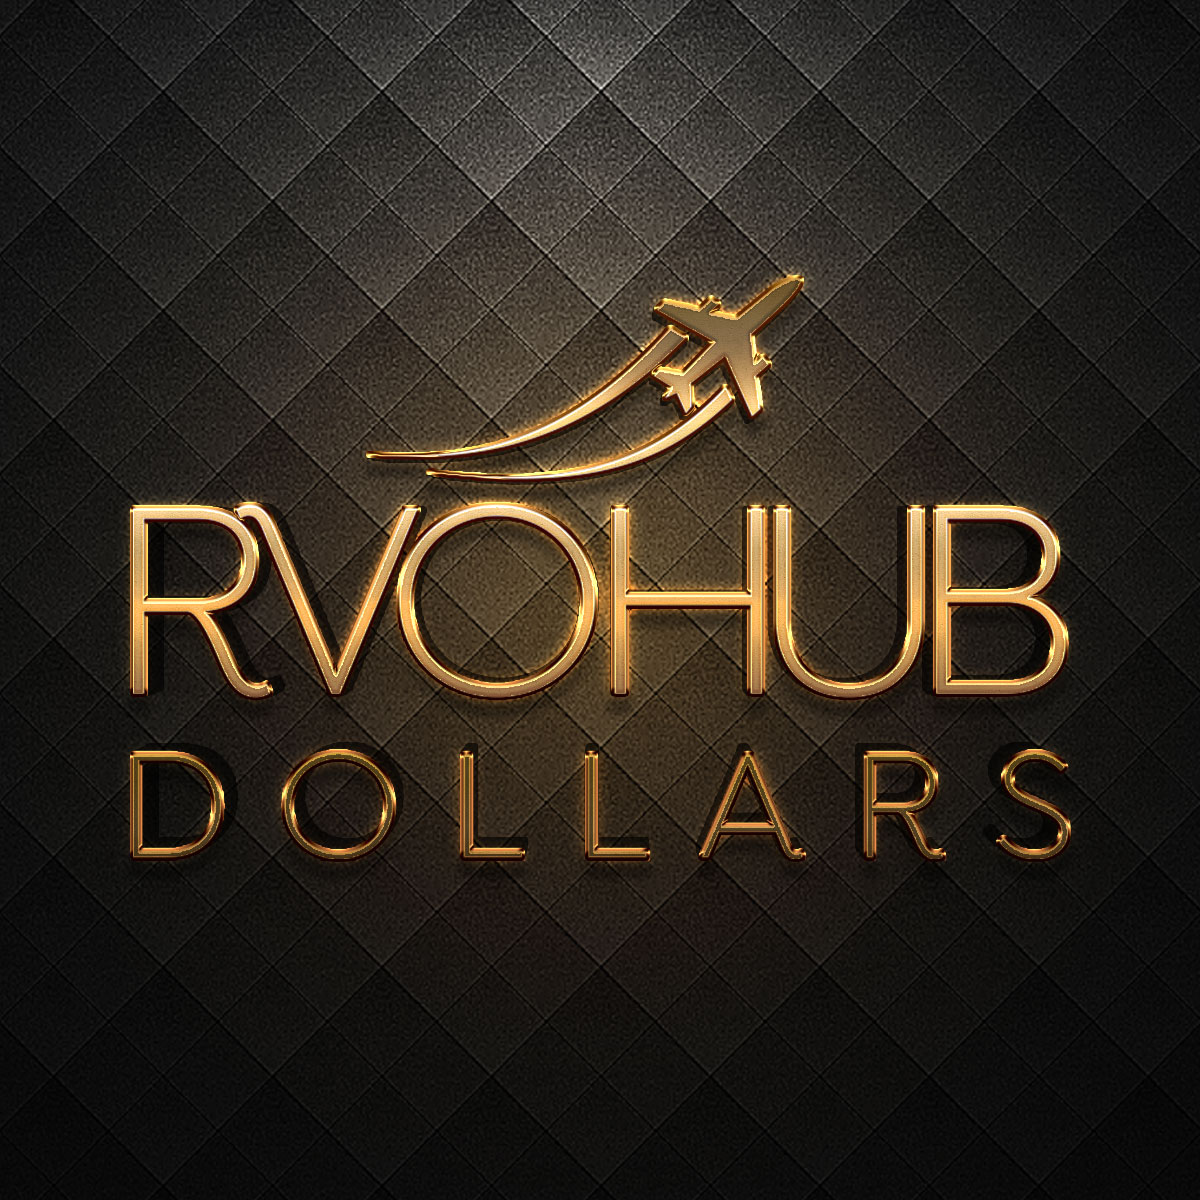 new_logo_rvohub_dollars